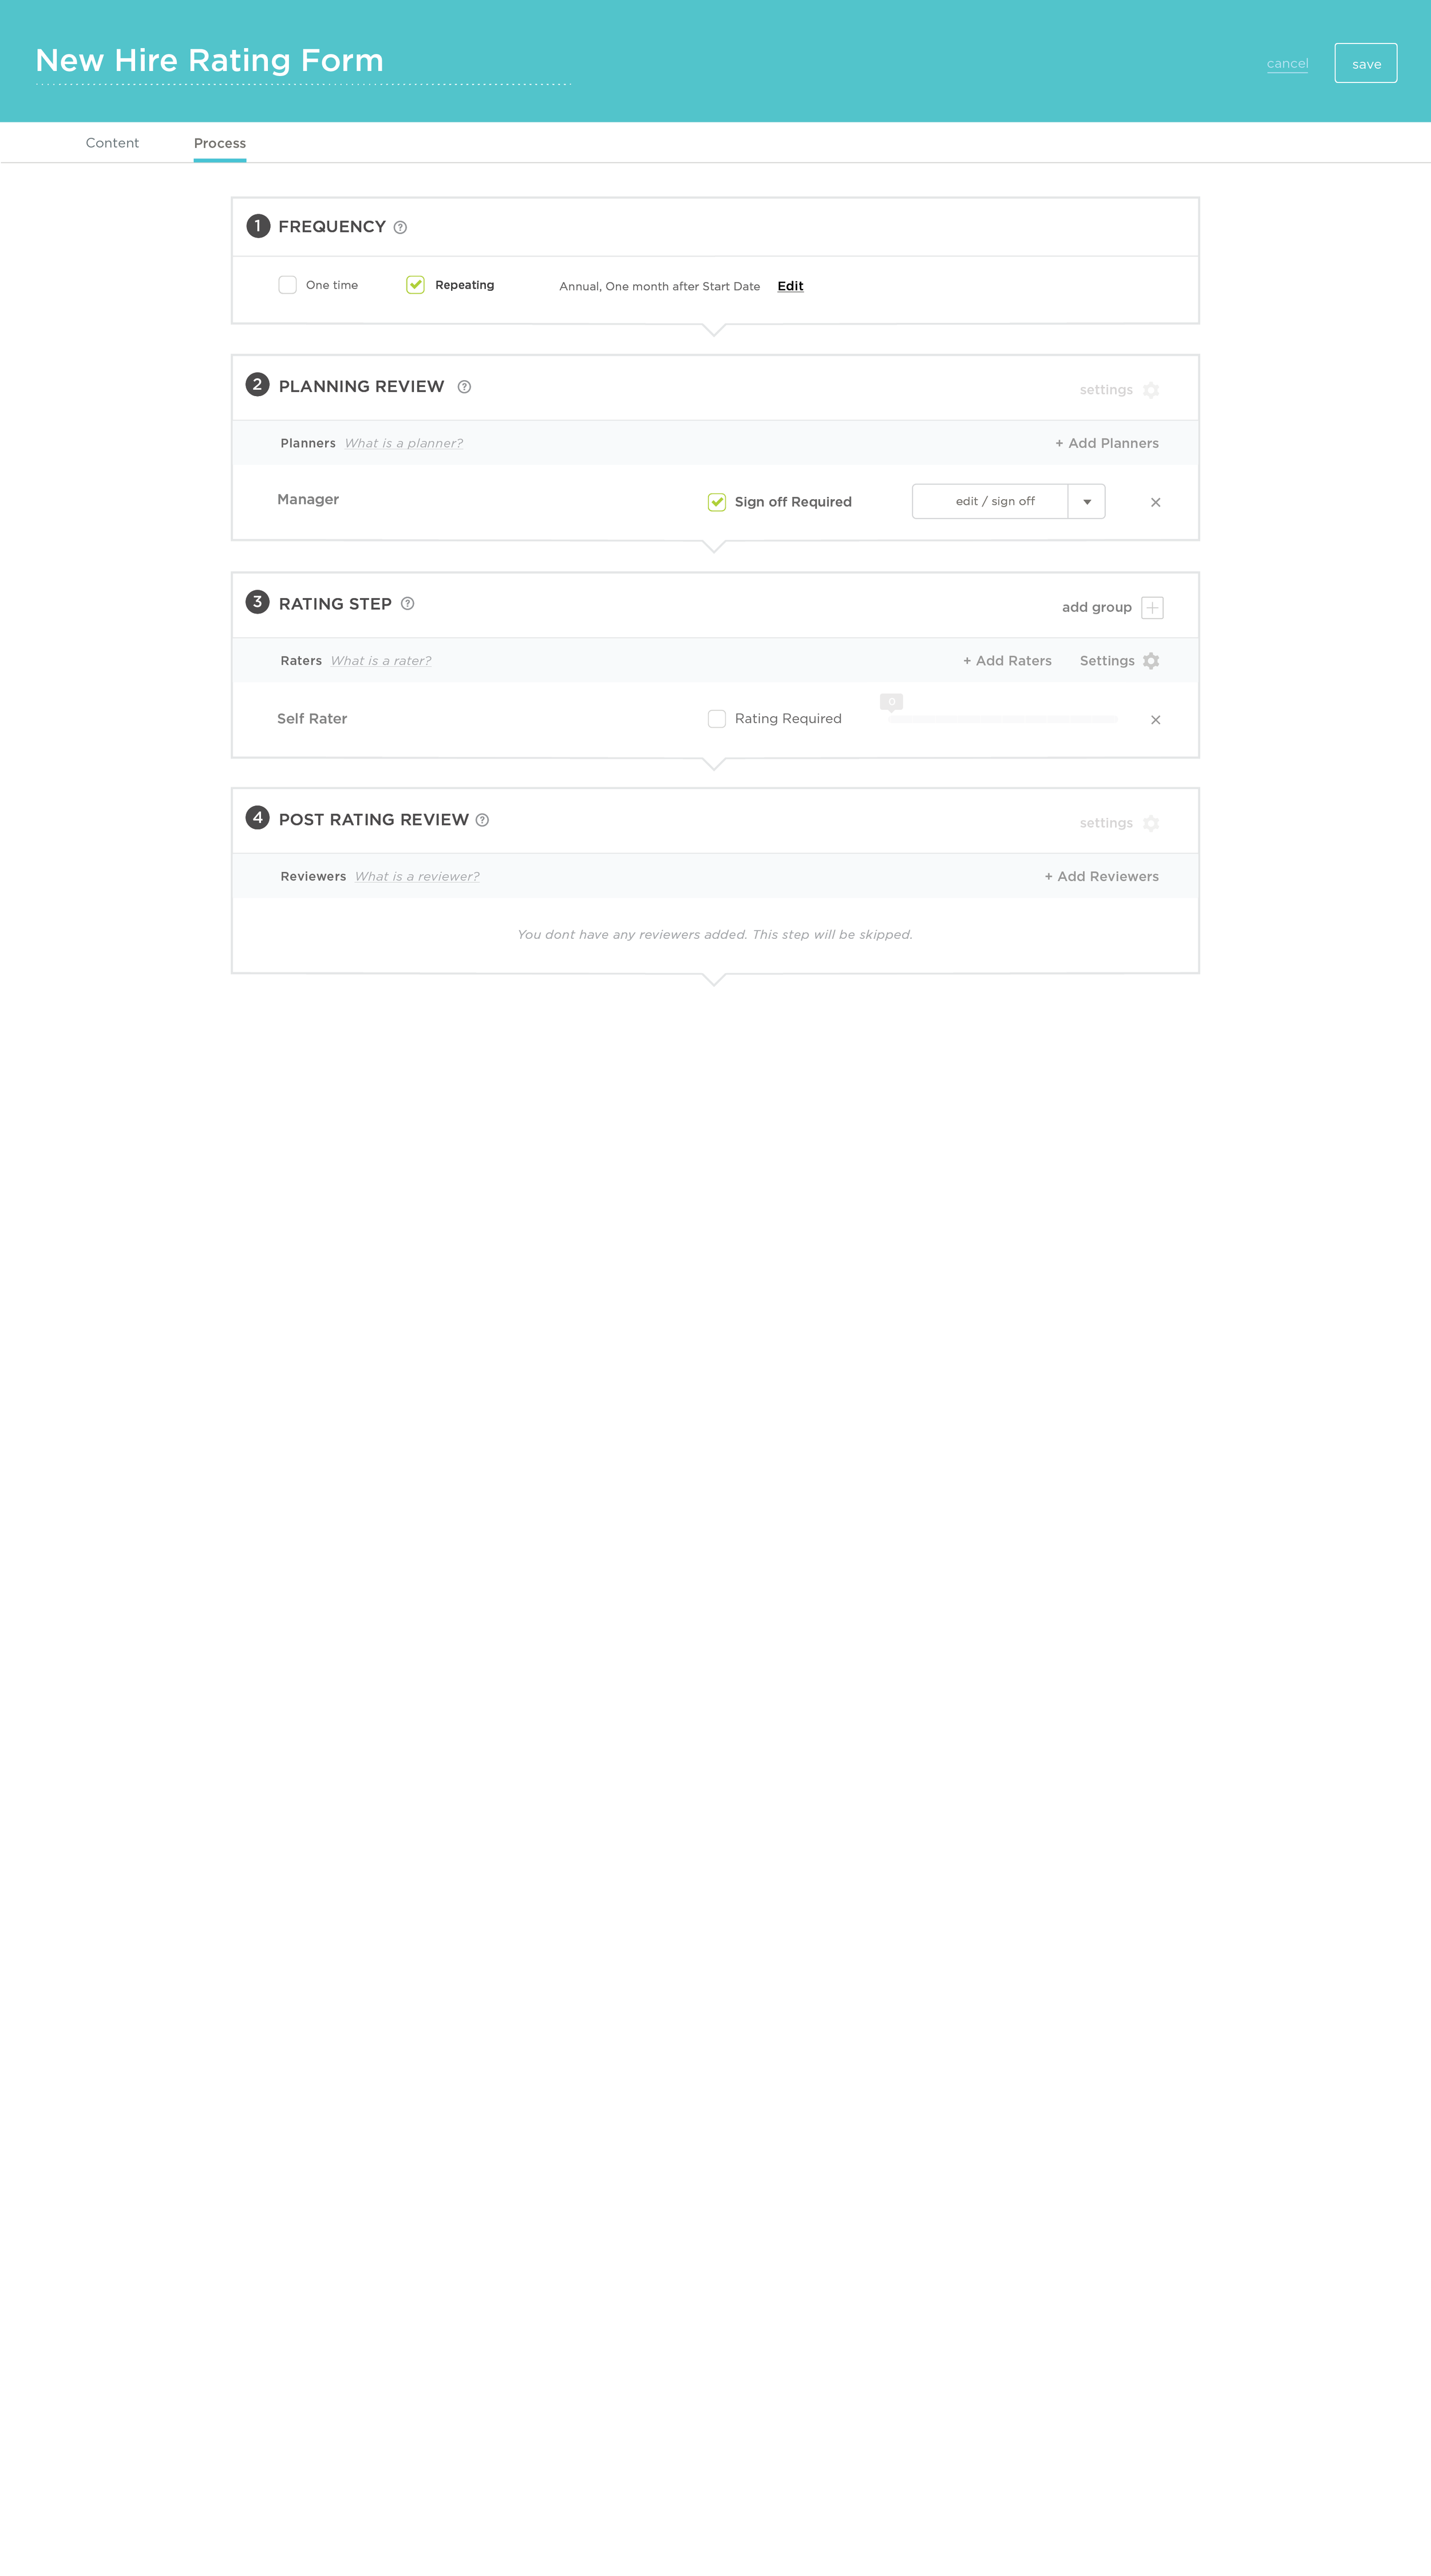 Invision_Pe_rating-form-process_03_9.png